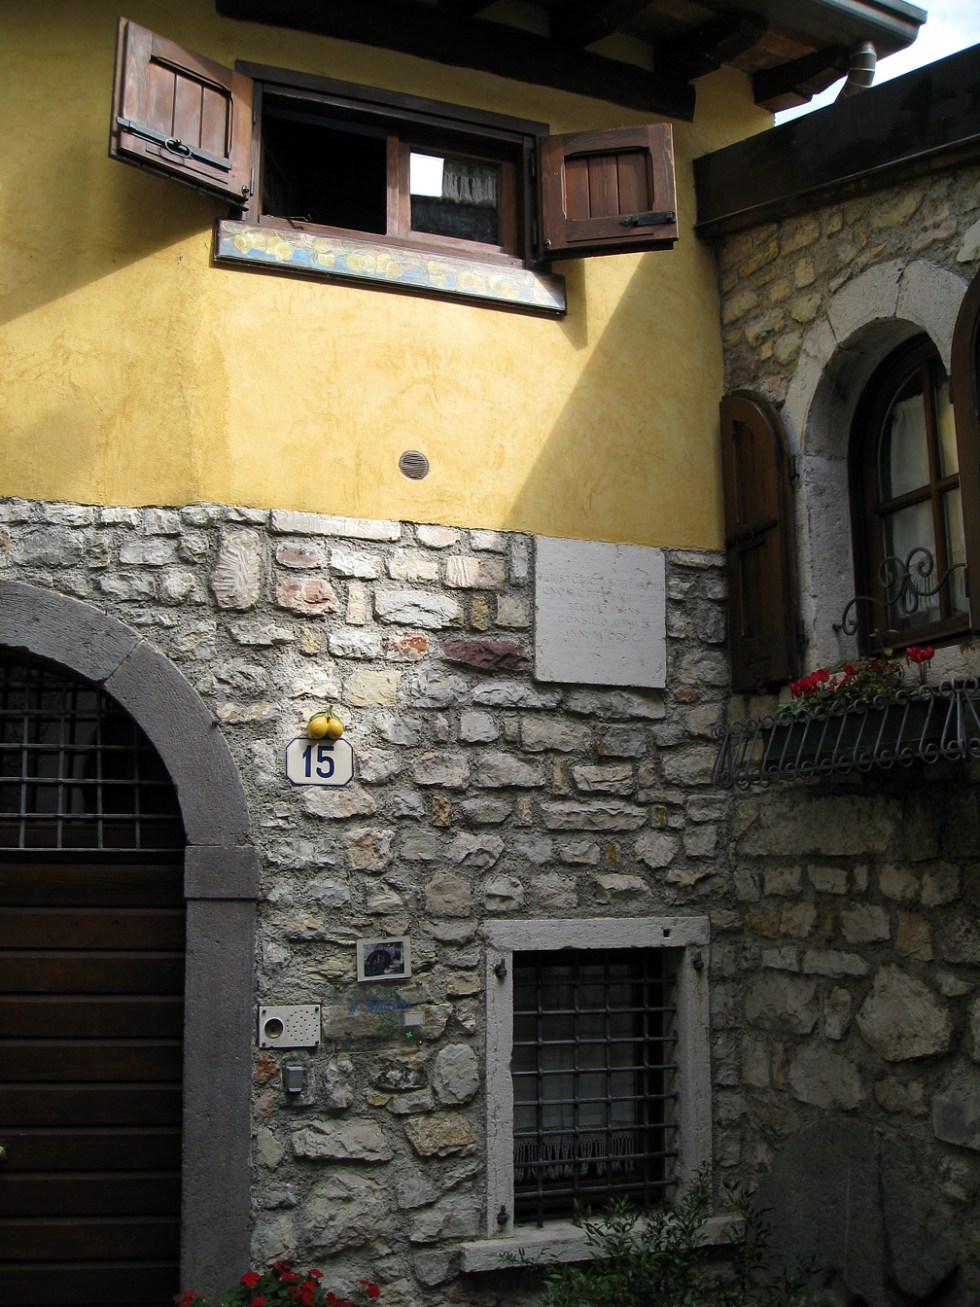 (above) Another street address tucked into a corner in Gargnano, Italy. Even the intercom looks picturesque.